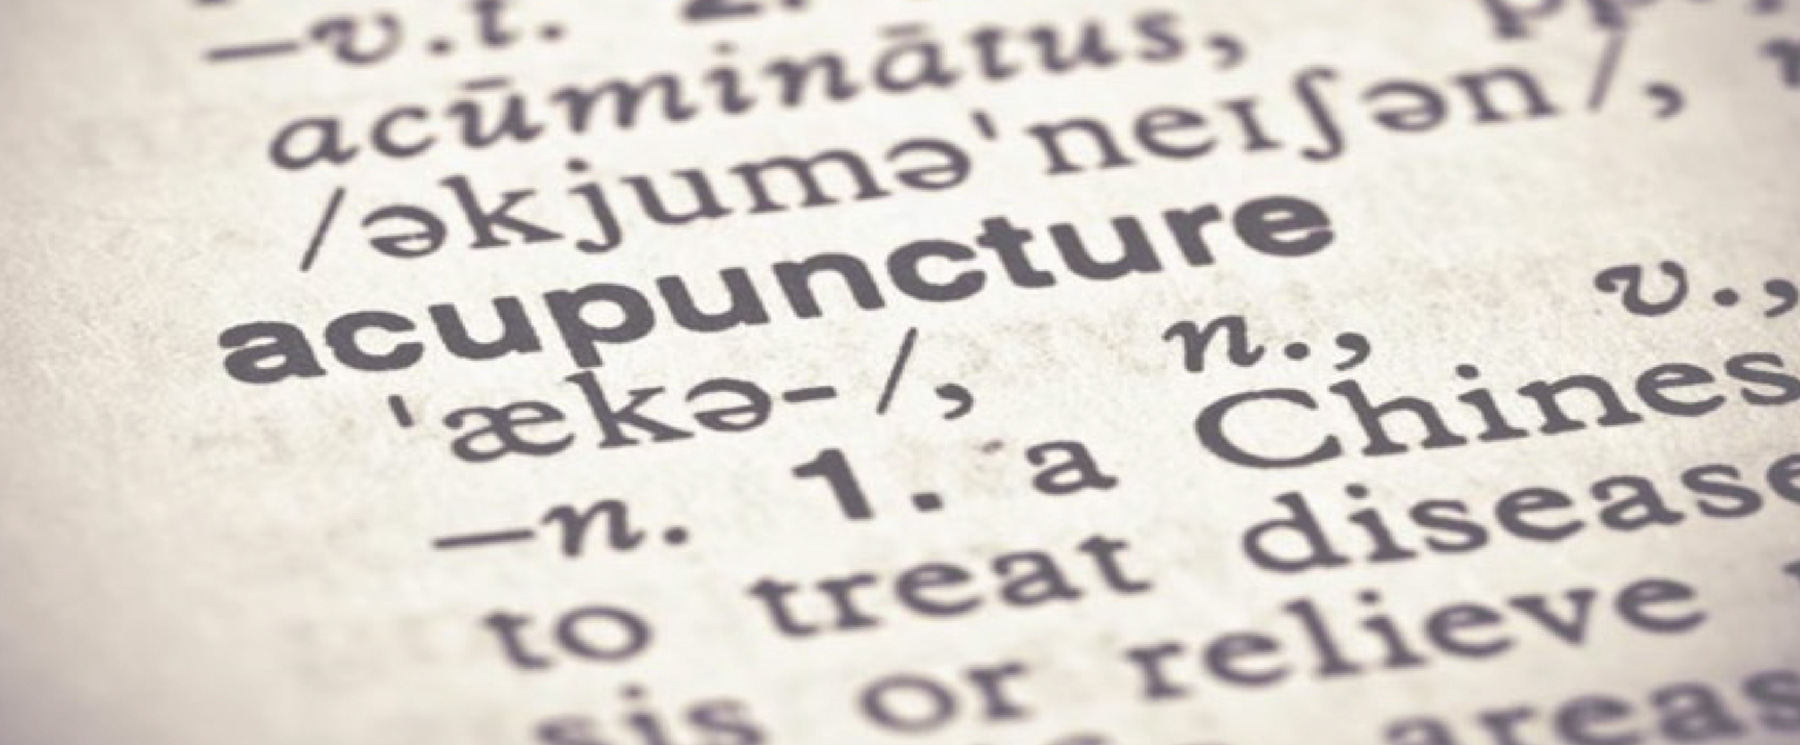 acupuncture-barnstaple